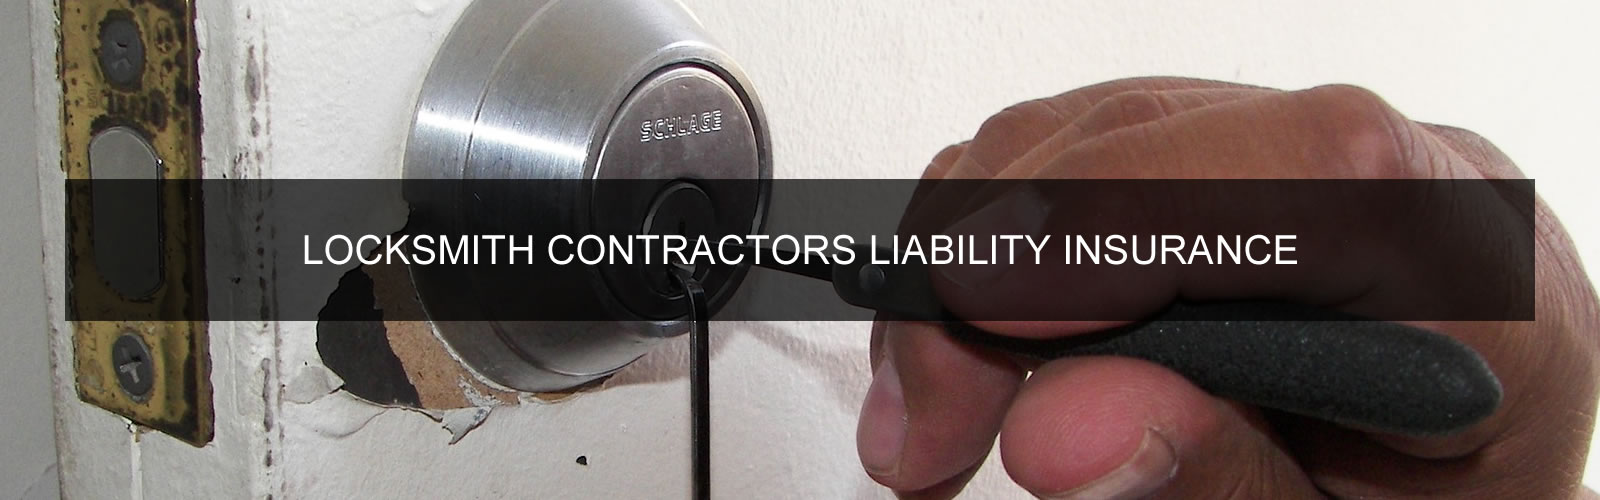 Locksmiths Contractors Liability Insurance